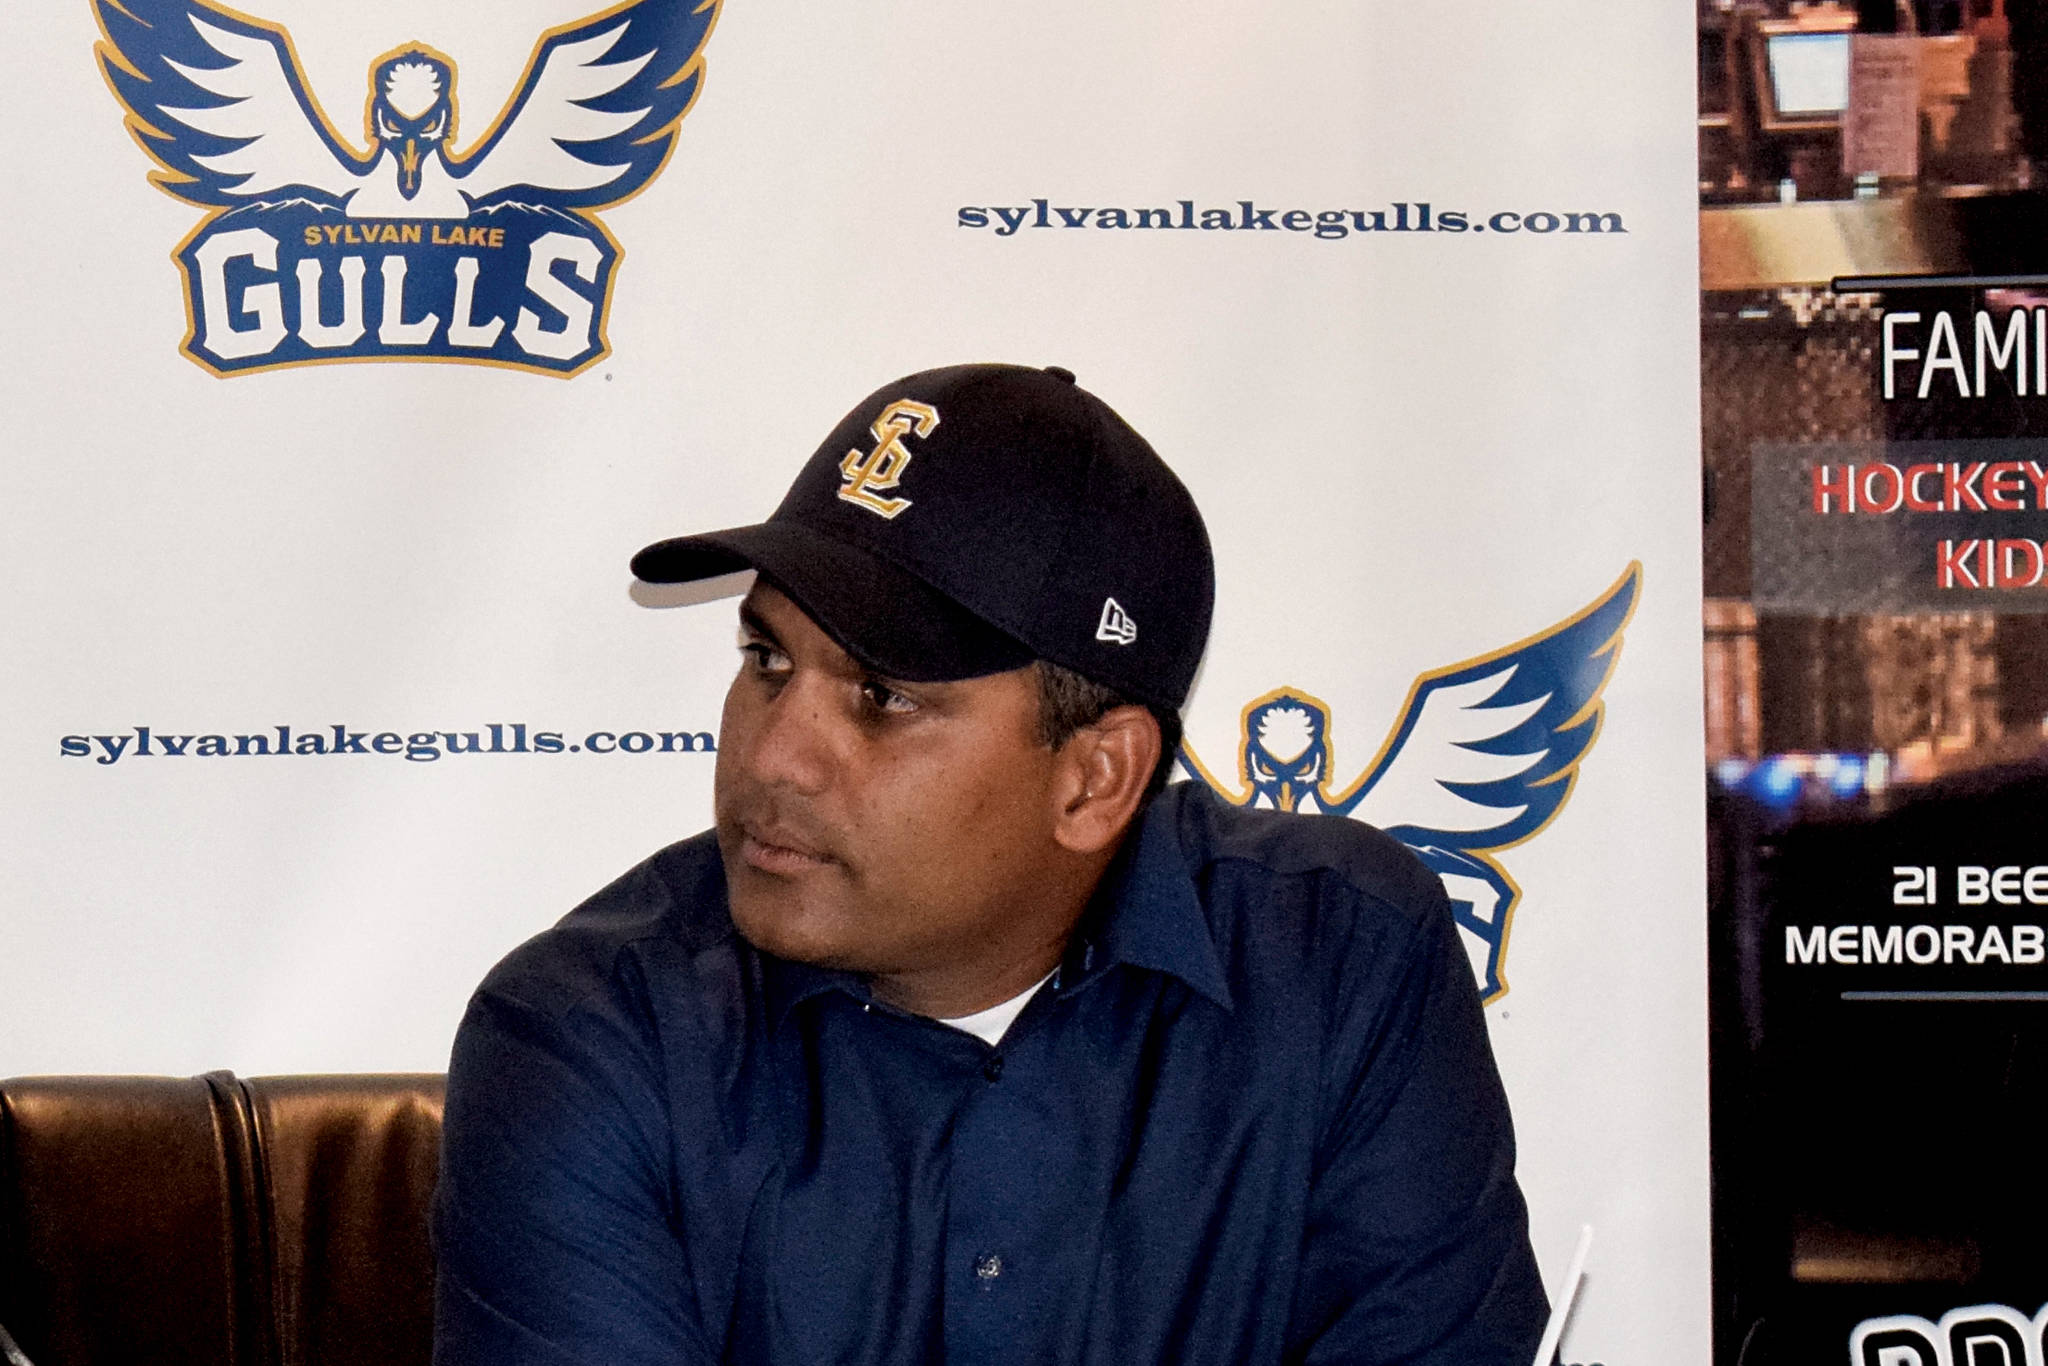 Head Coach Jason Chatwood (left) sports one of the Sylvan Lake Gulls' first on-field hats next to Aqil Samuel, general manager and president of baseball operations, at Hockey Central on July 26. (Photo by Sylvan Lake News)